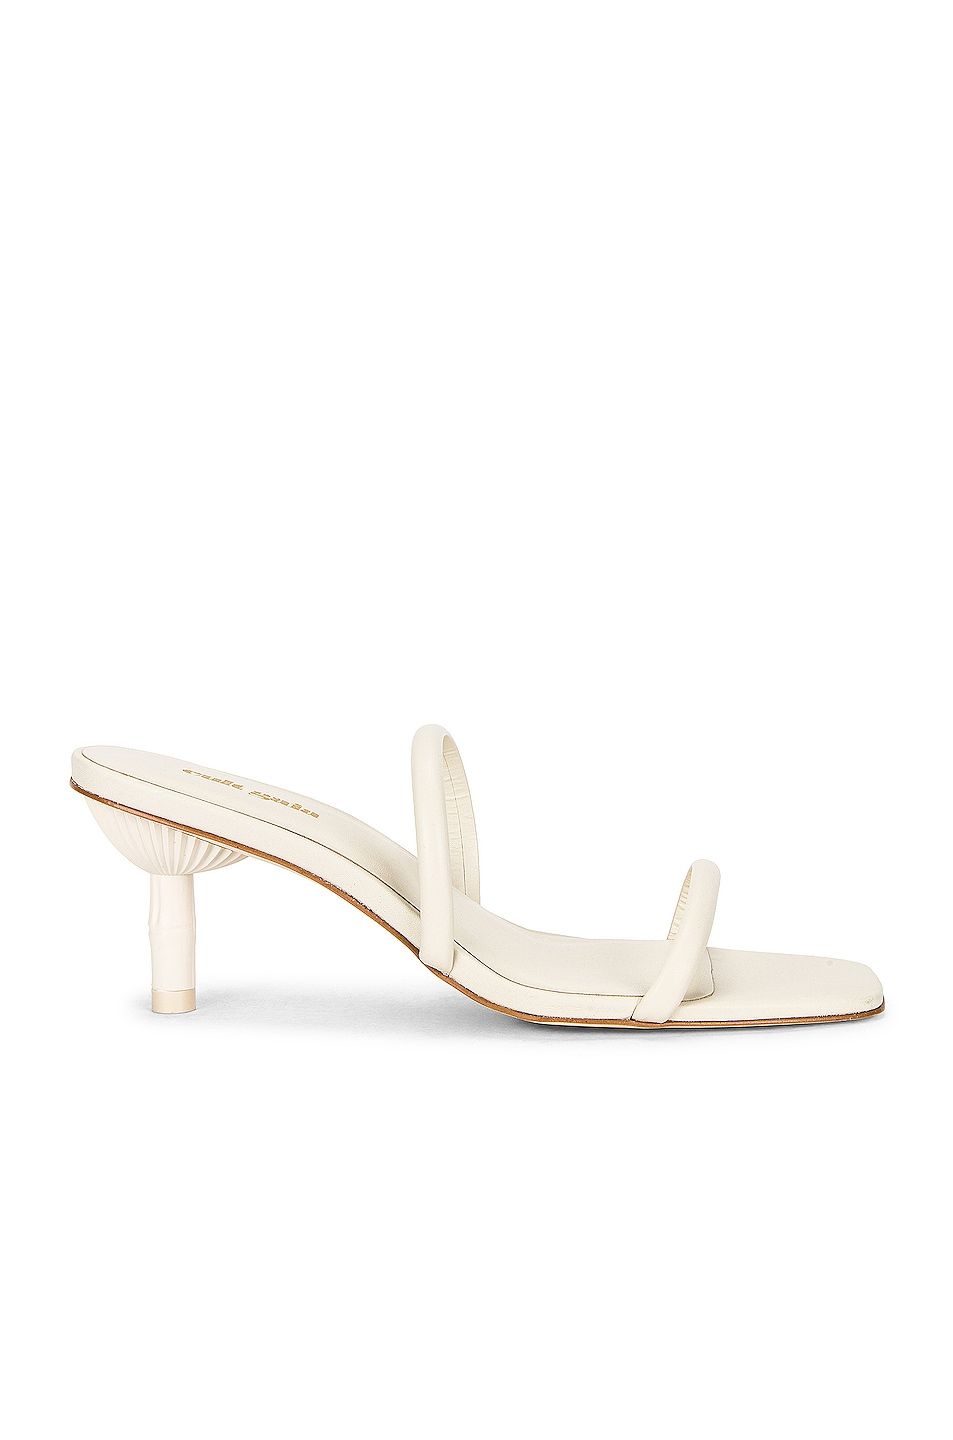 Image 1 of Cult Gaia Sol Sandal in Off White